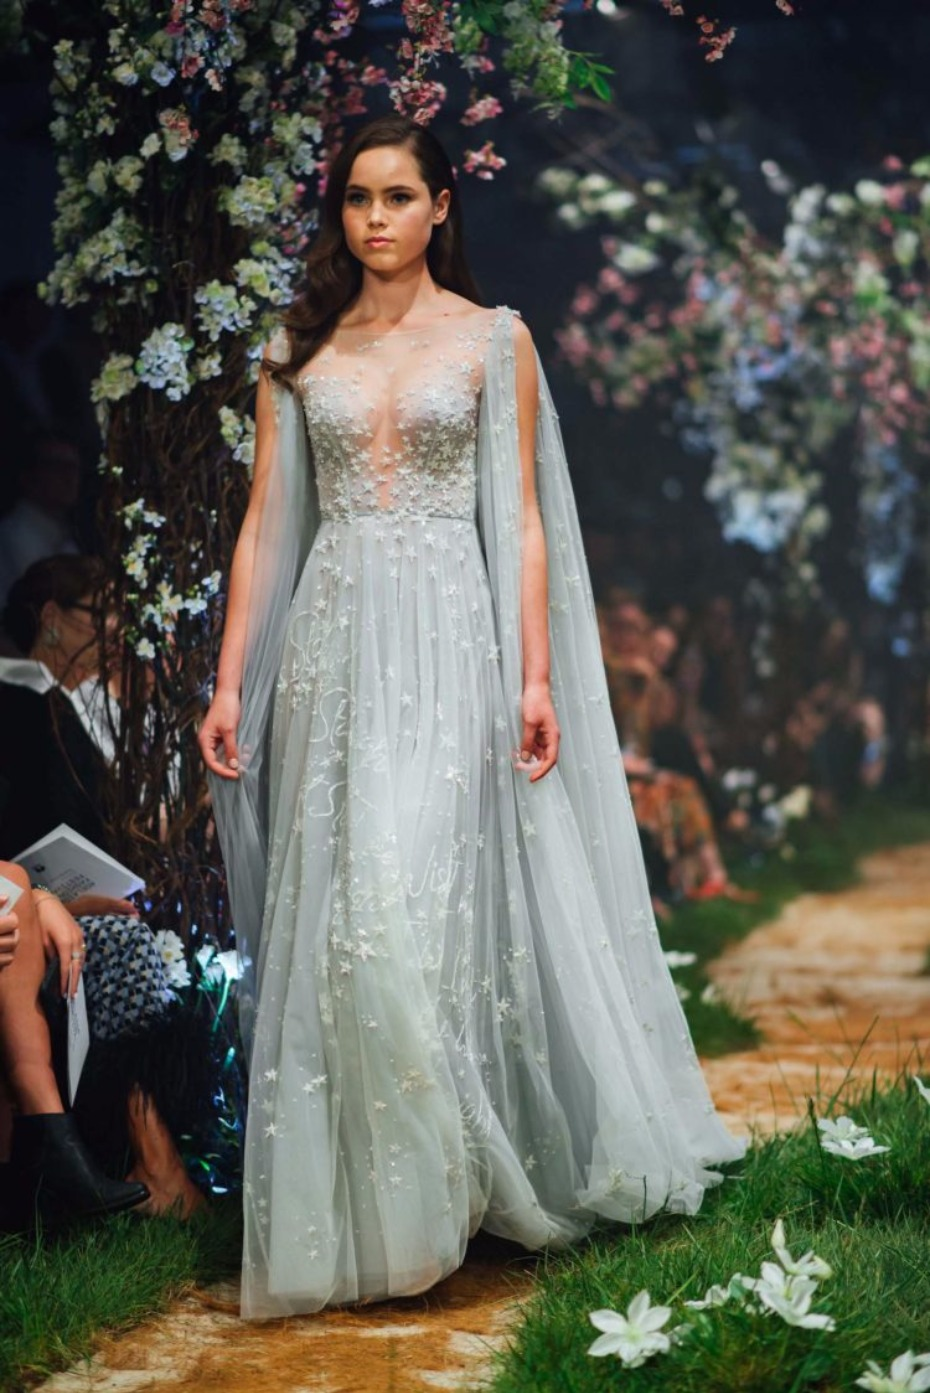 Disney Wedding Dress By Paolo Sebastian